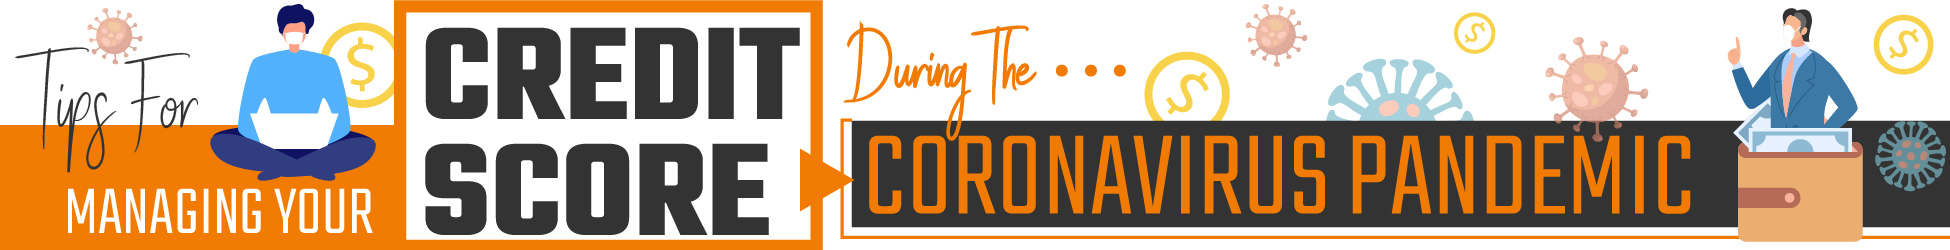 tips for managing Credit Score During The Corona Virus Pandemic